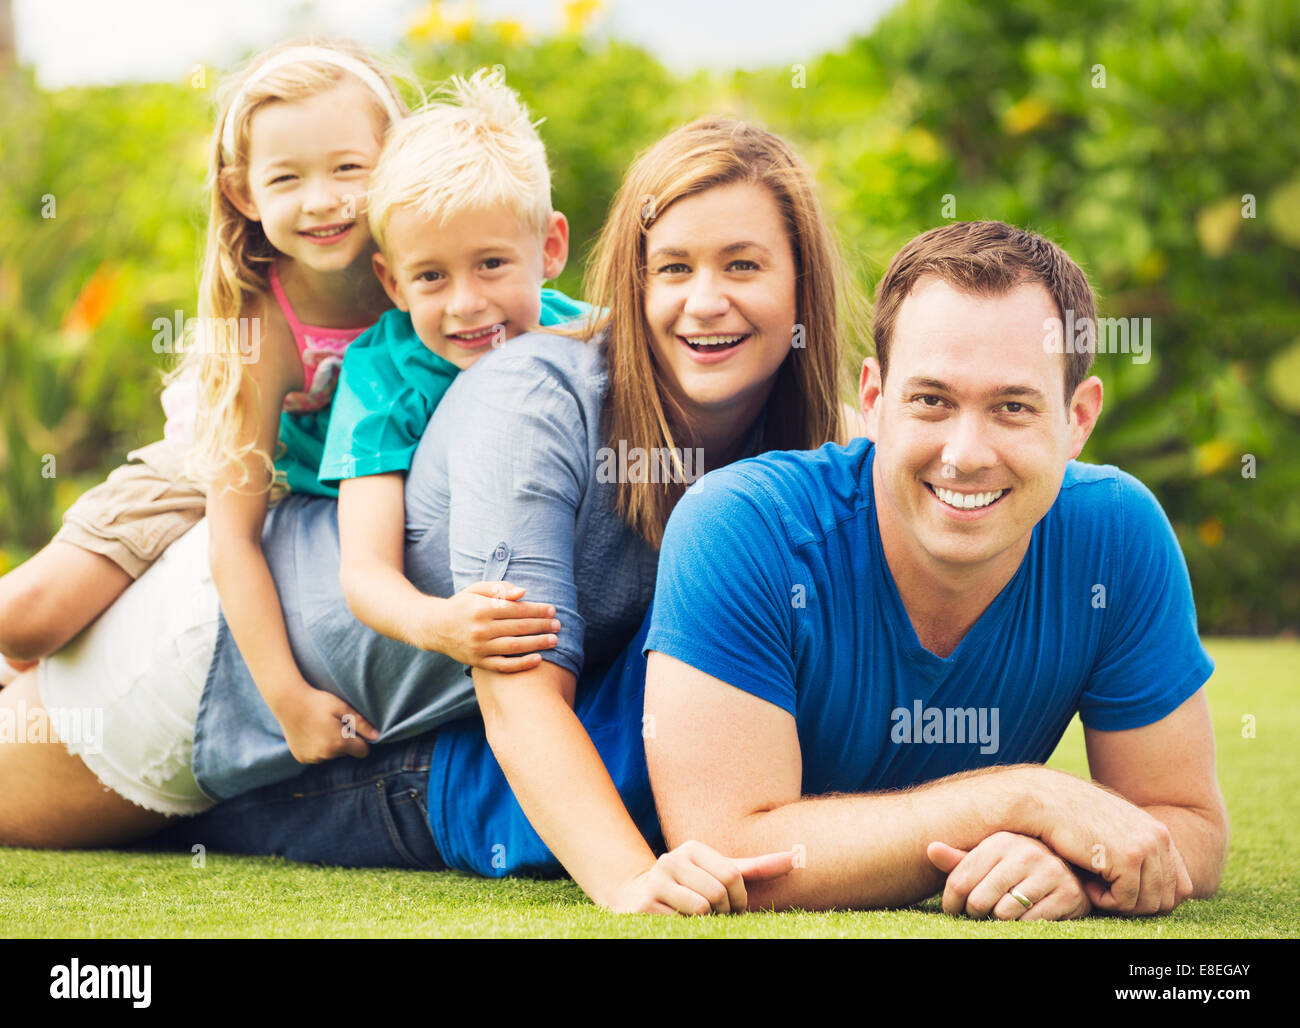 Portrait of Happy Family of Four Outside. Parents and Two Young Children Stock Photo